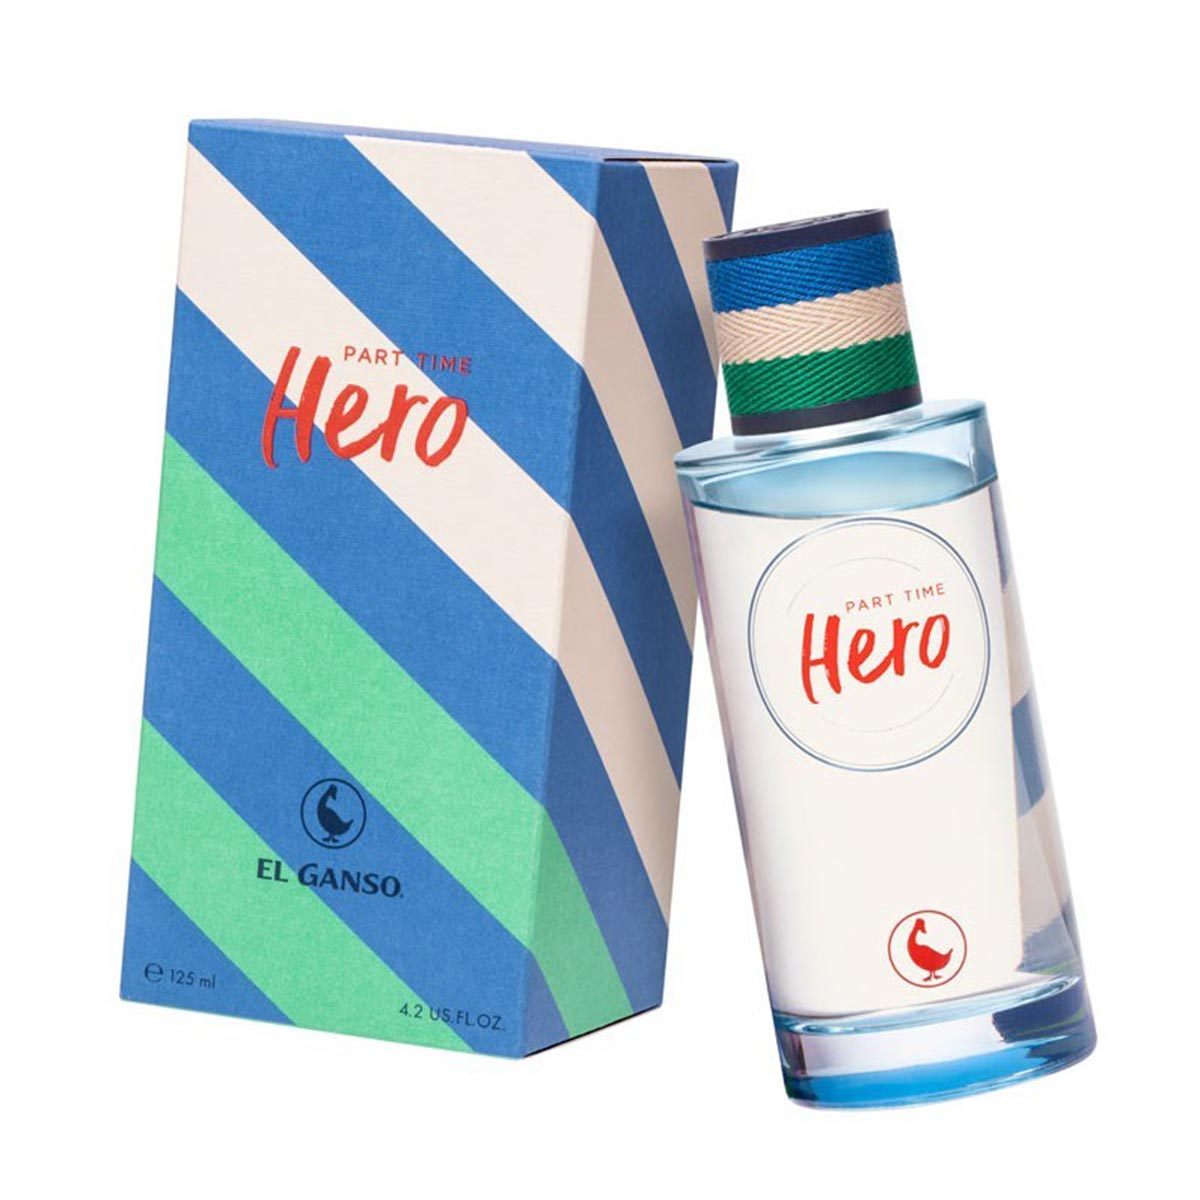 El ganso part time hero eau de toilette 125ml vaporizador